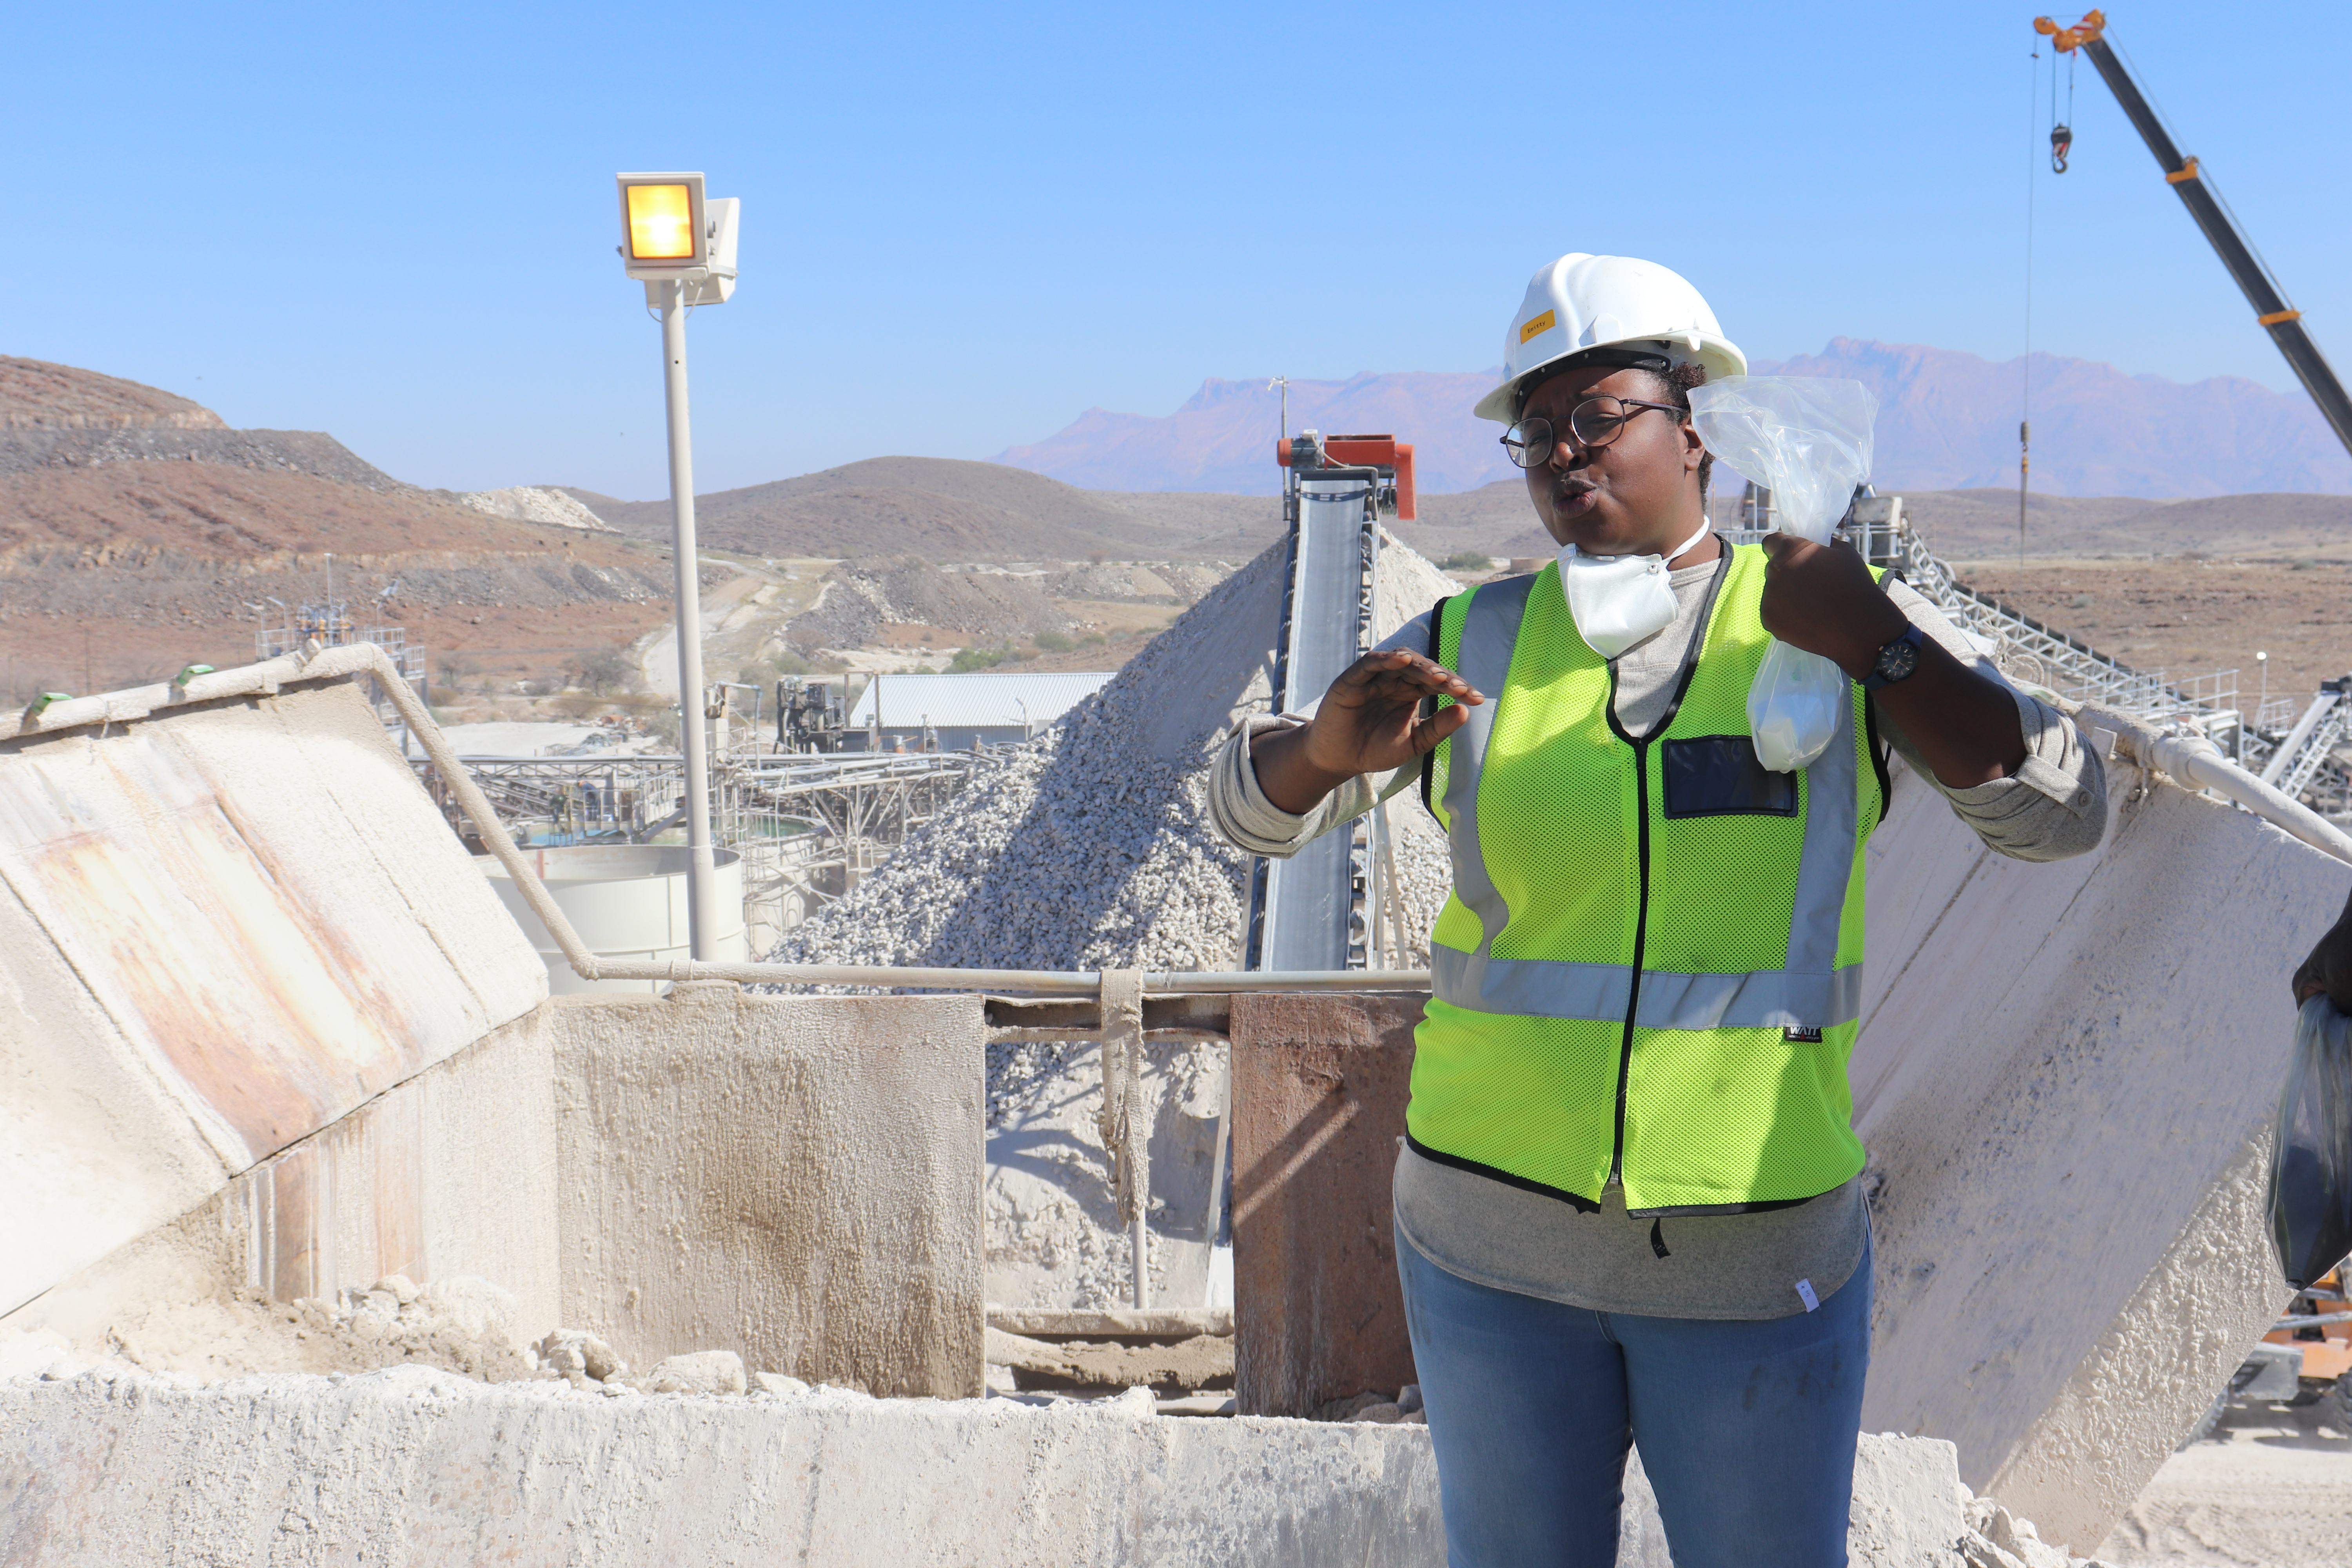 Mutenda overcomes challenges as a woman in mining